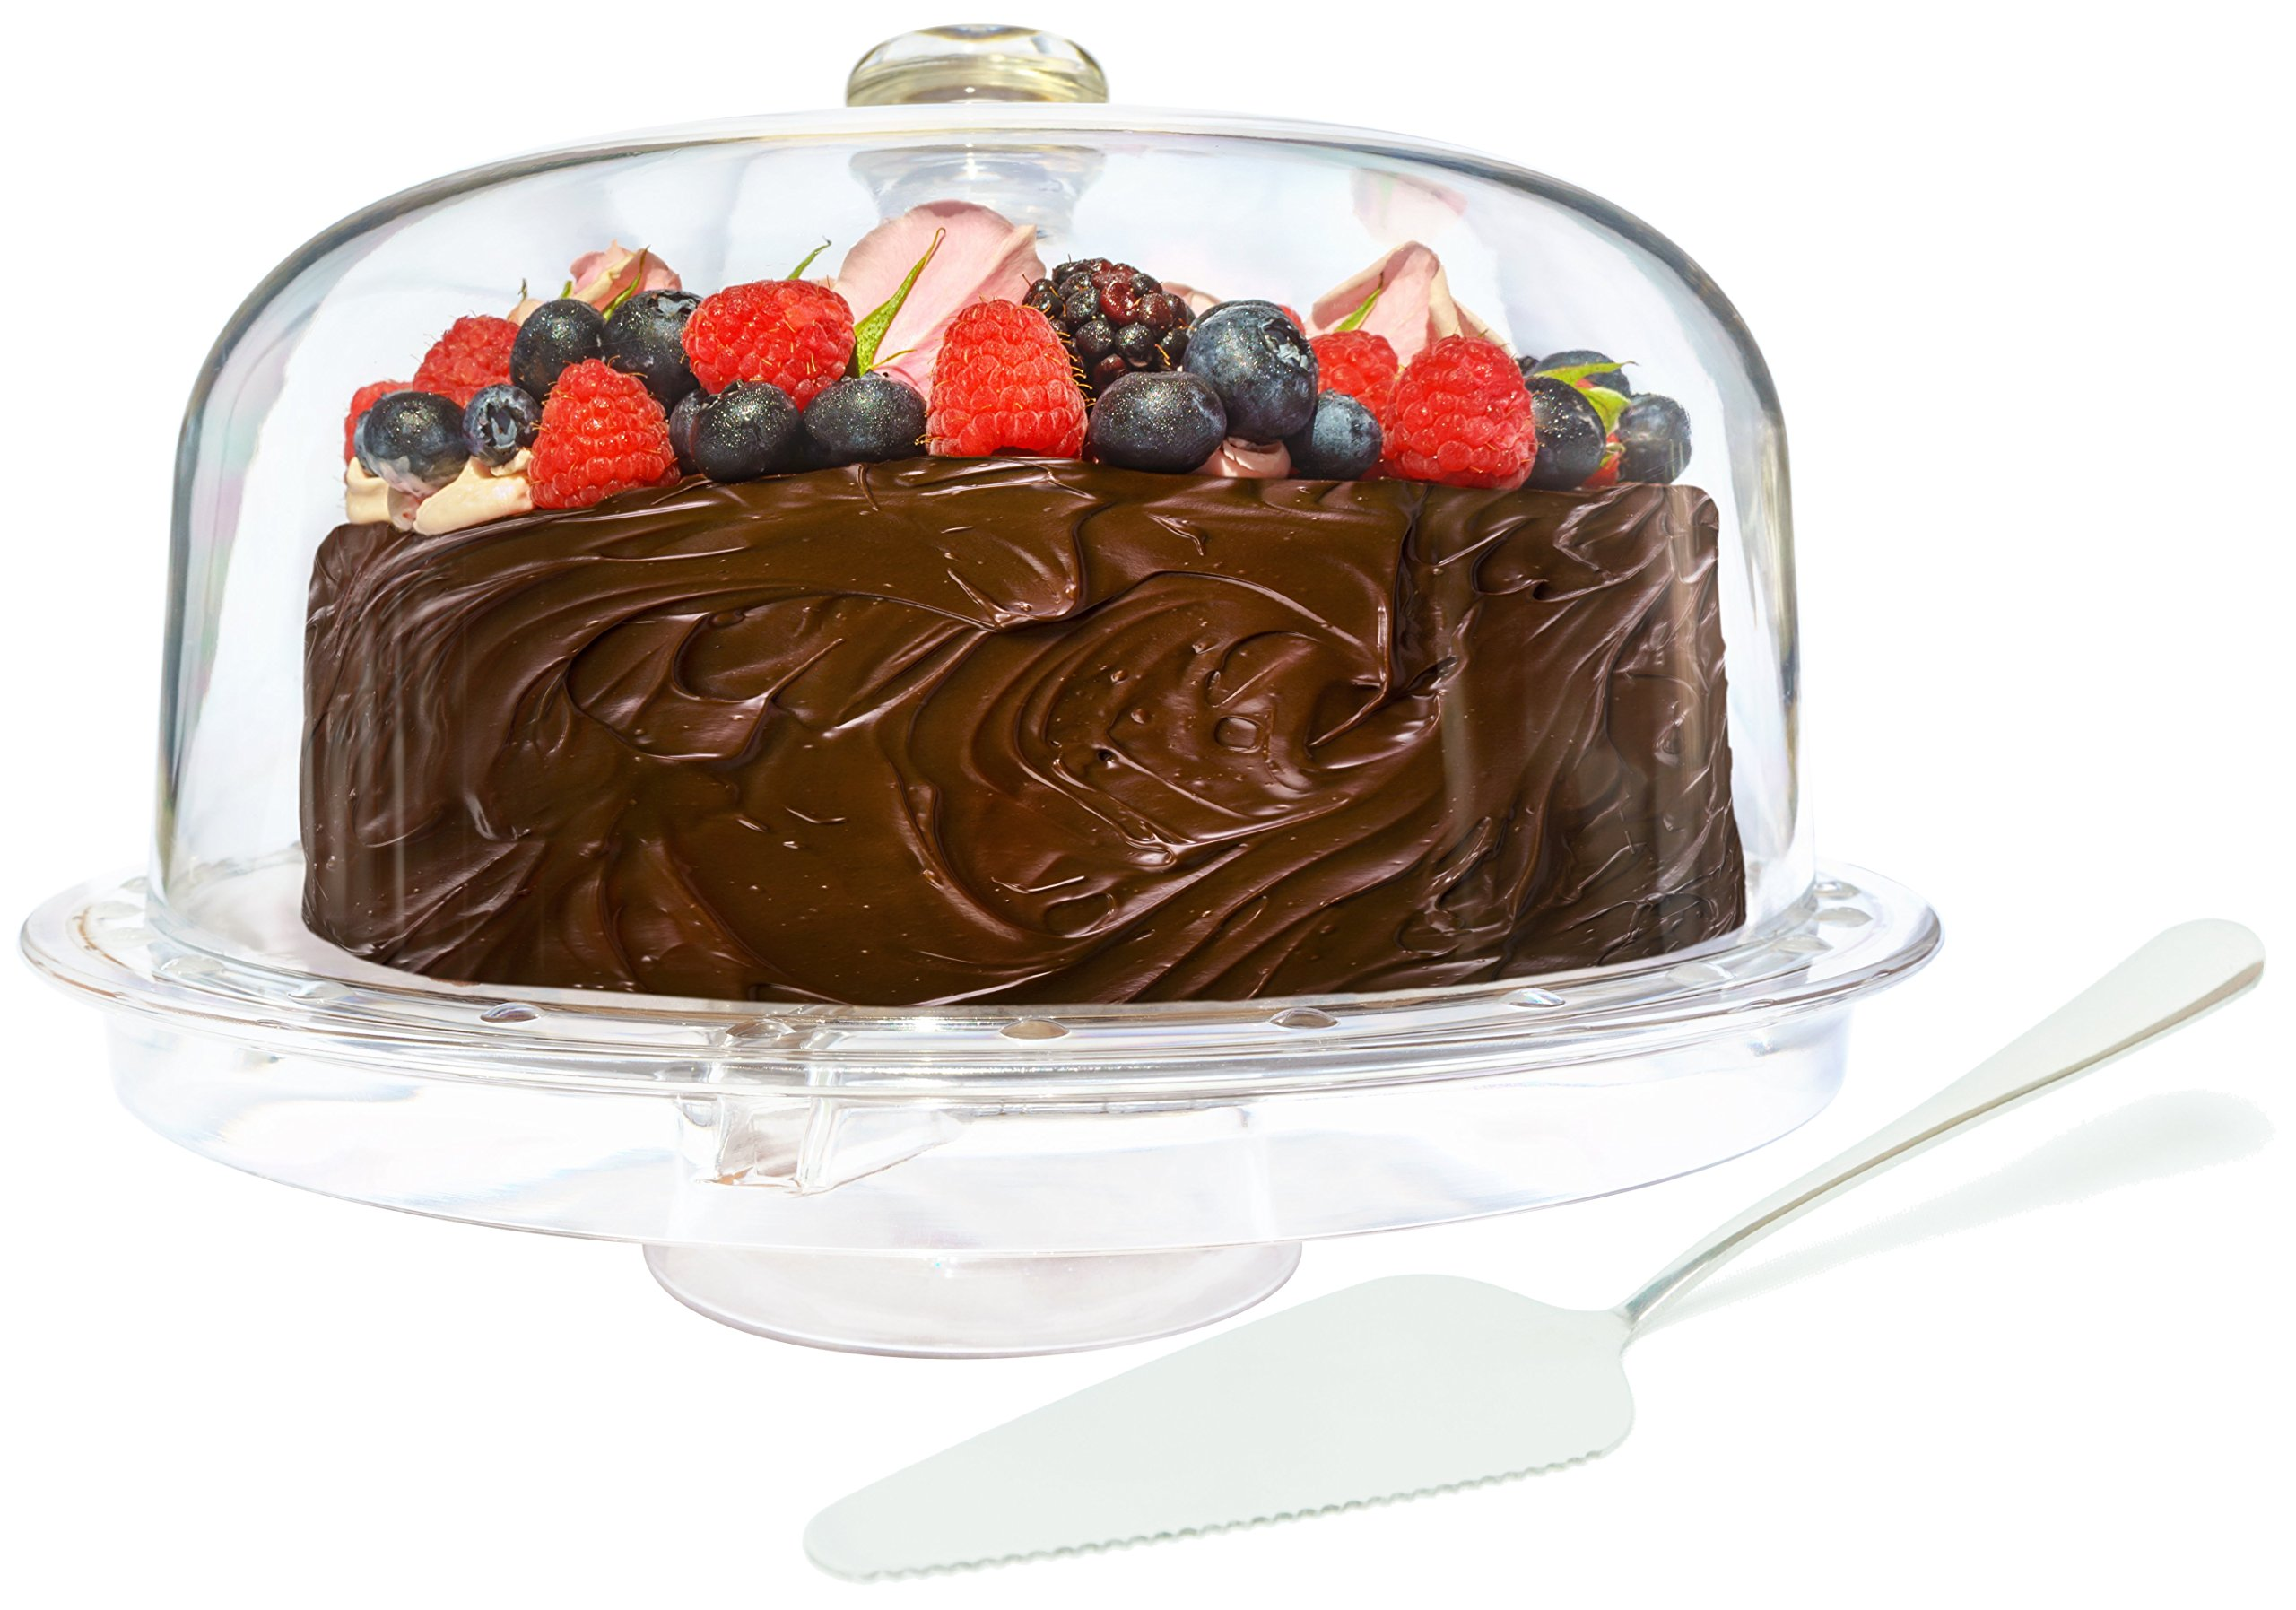 ImpiriLux Acrylic Cake Dome Stand and Multifunctional Serving Platter with Stainless Steel Cake Cutter Server for Desserts, Chips, Salads, Pastry and more